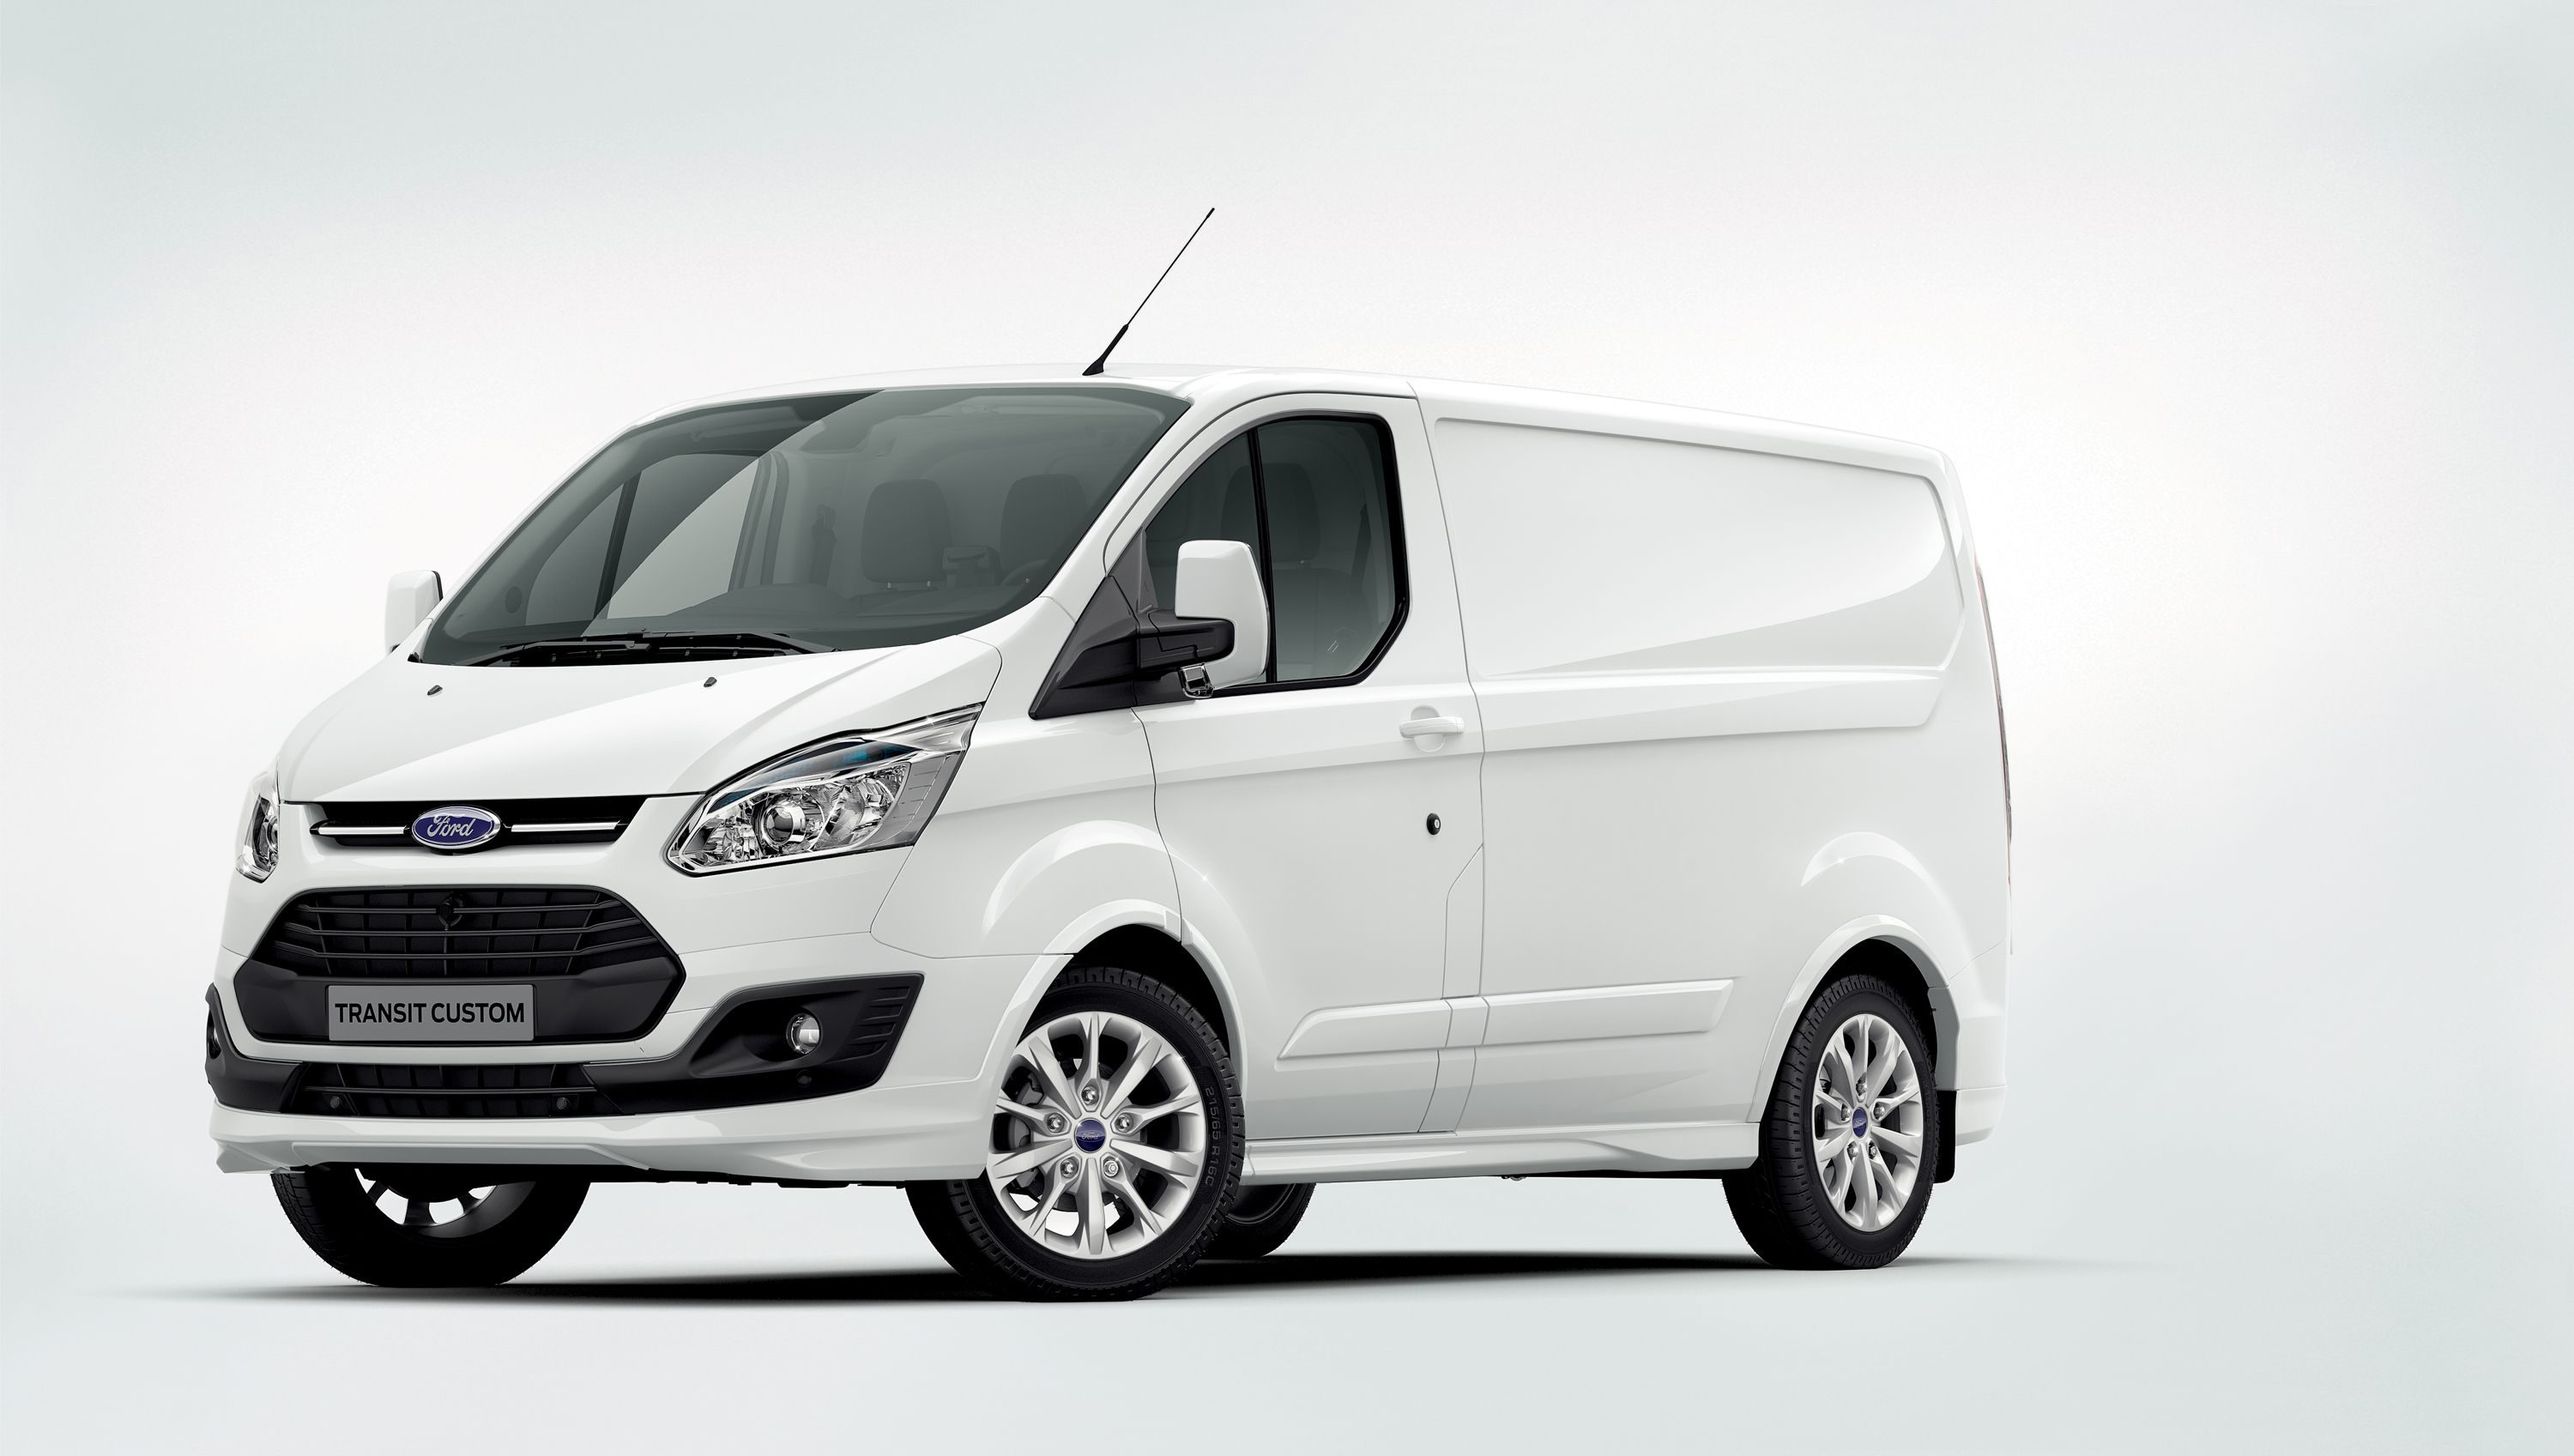 Ford transit custom h ada googlom